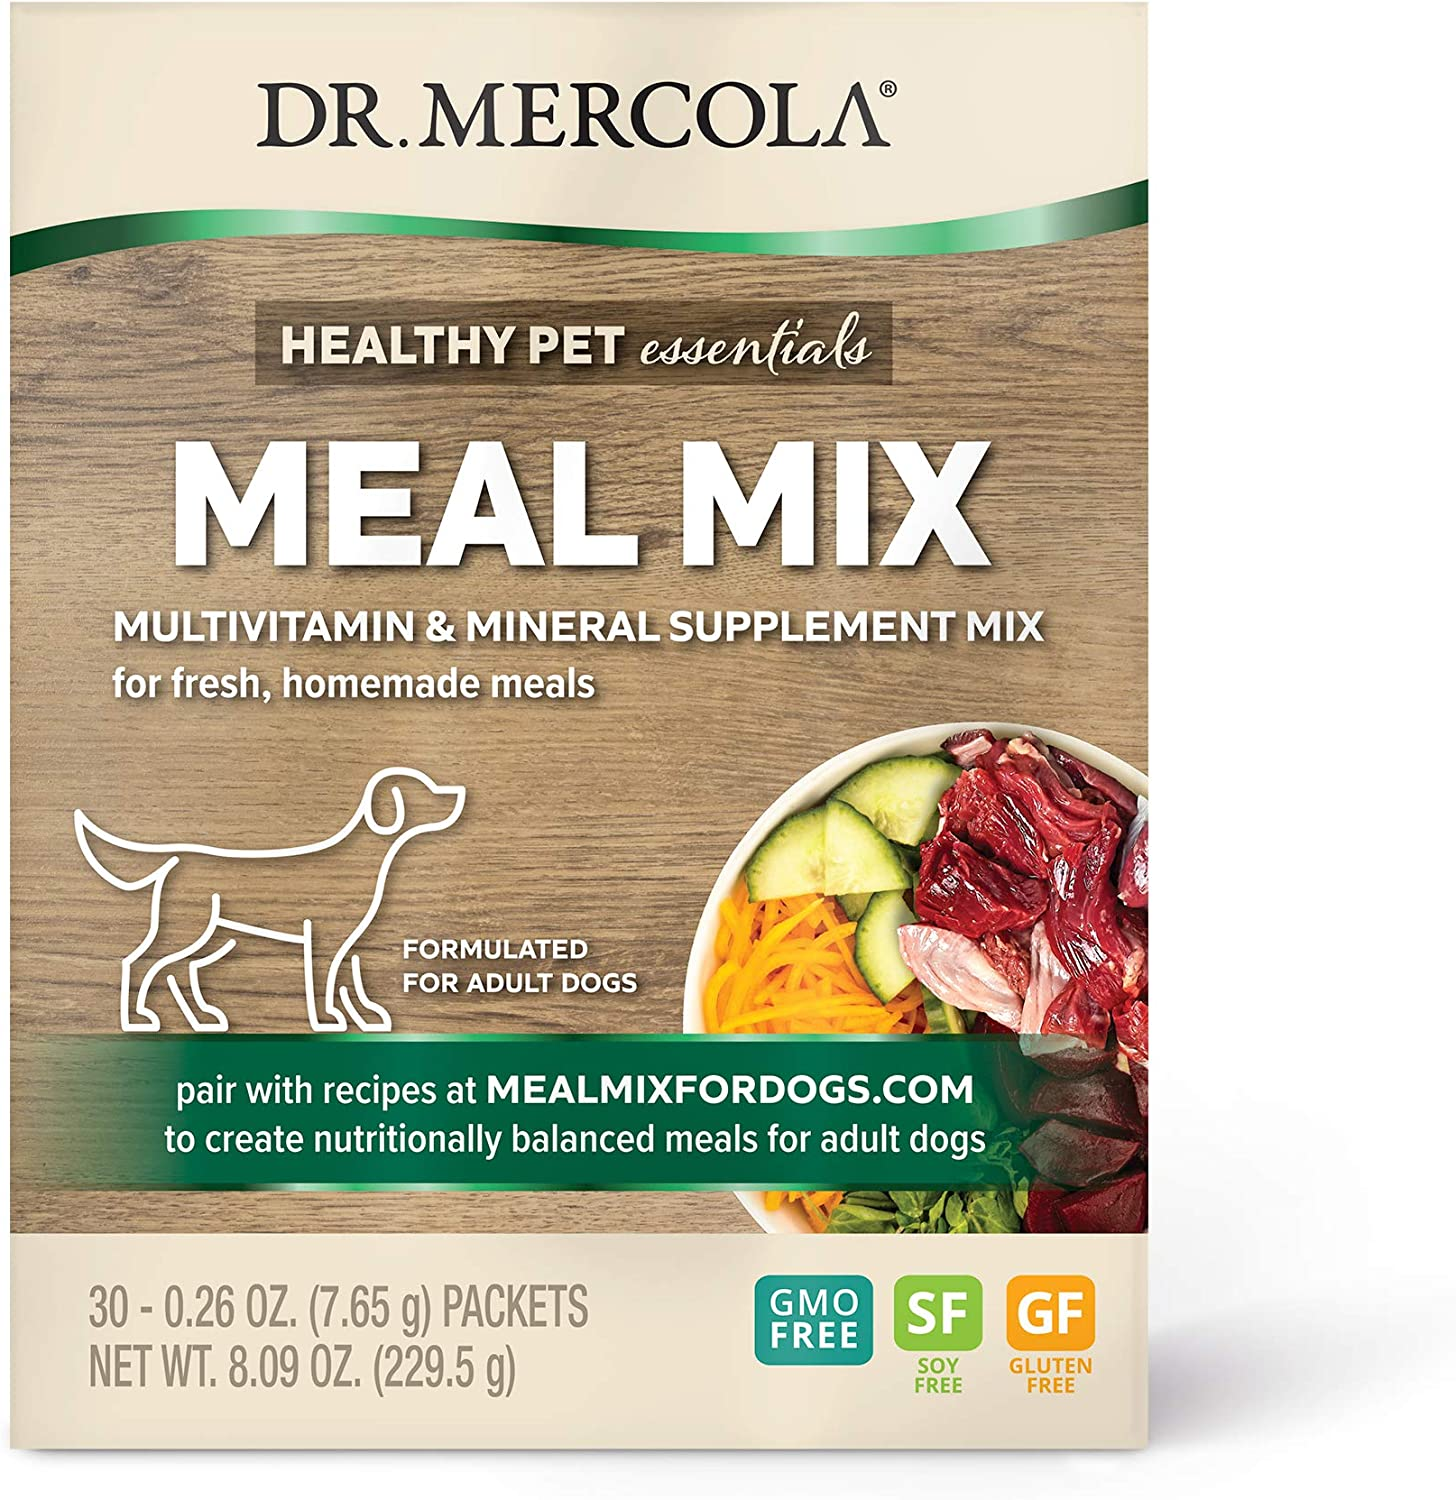 Dr. Mercola Meal Mix for Adult Dogs, 30 Packets, Non GMO, Soy Free, Gluten Free